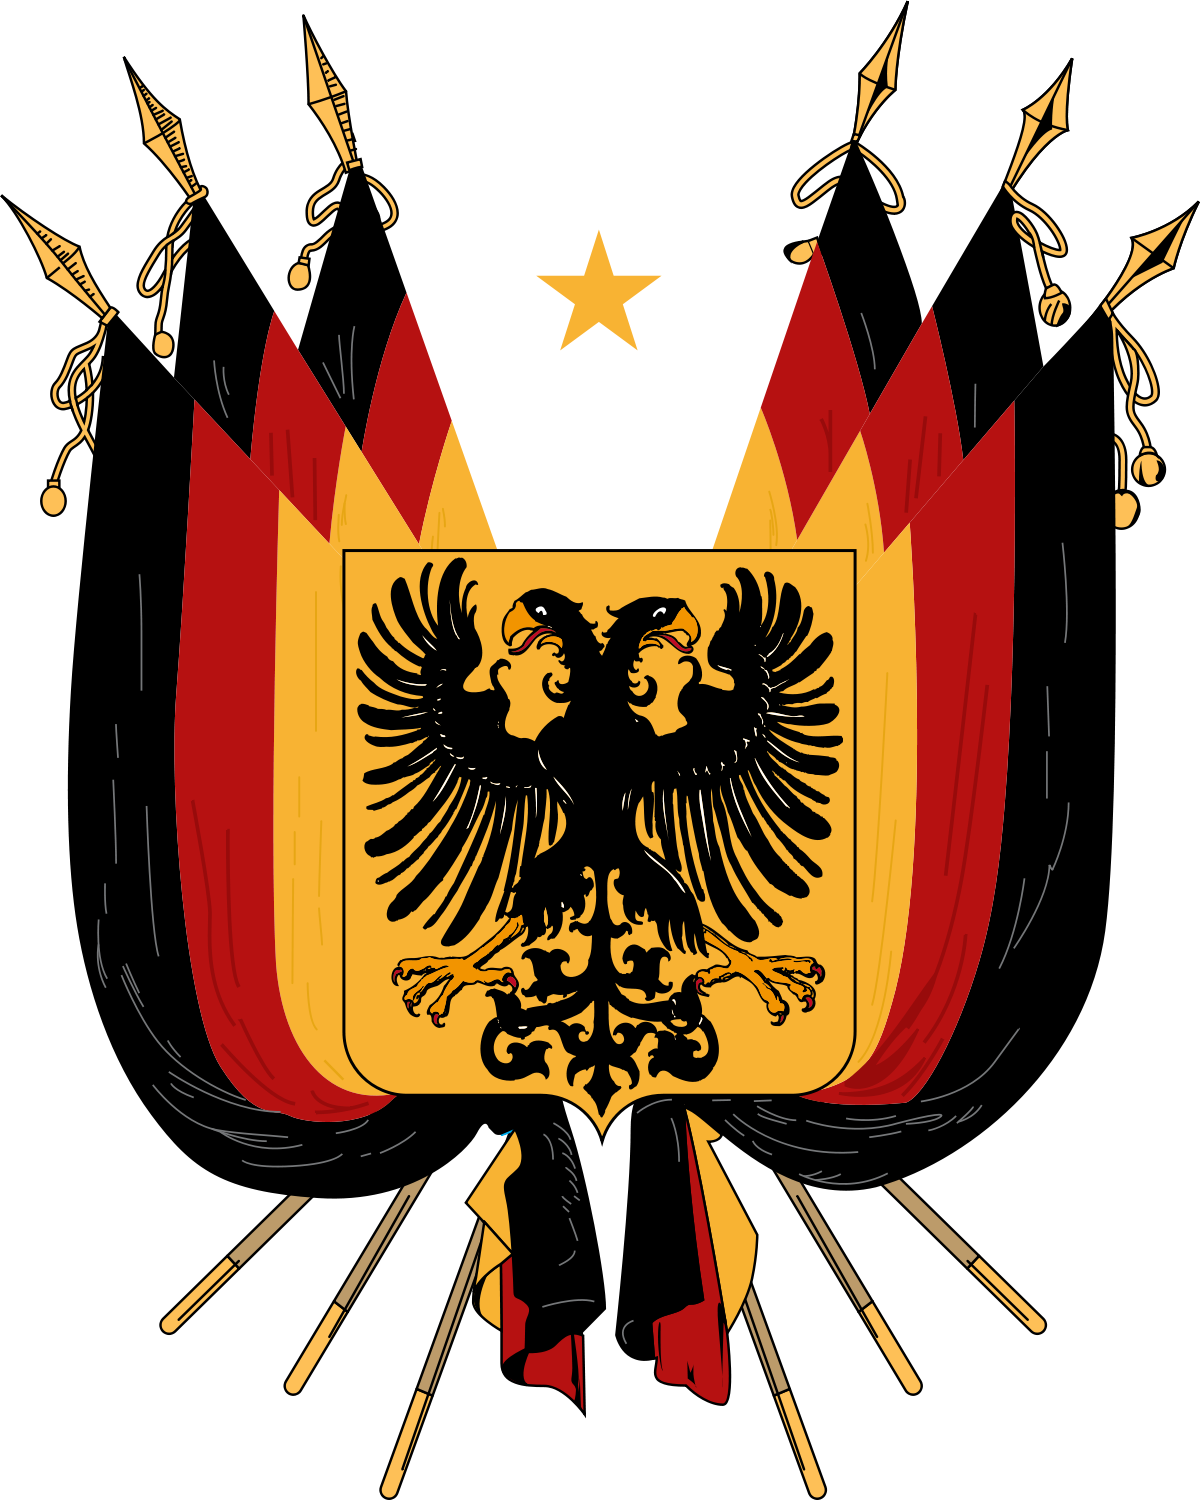 Coat of arms of germany clipart download File:Imperial Coat of arms of Germany (1848).svg - Wikimedia Commons download